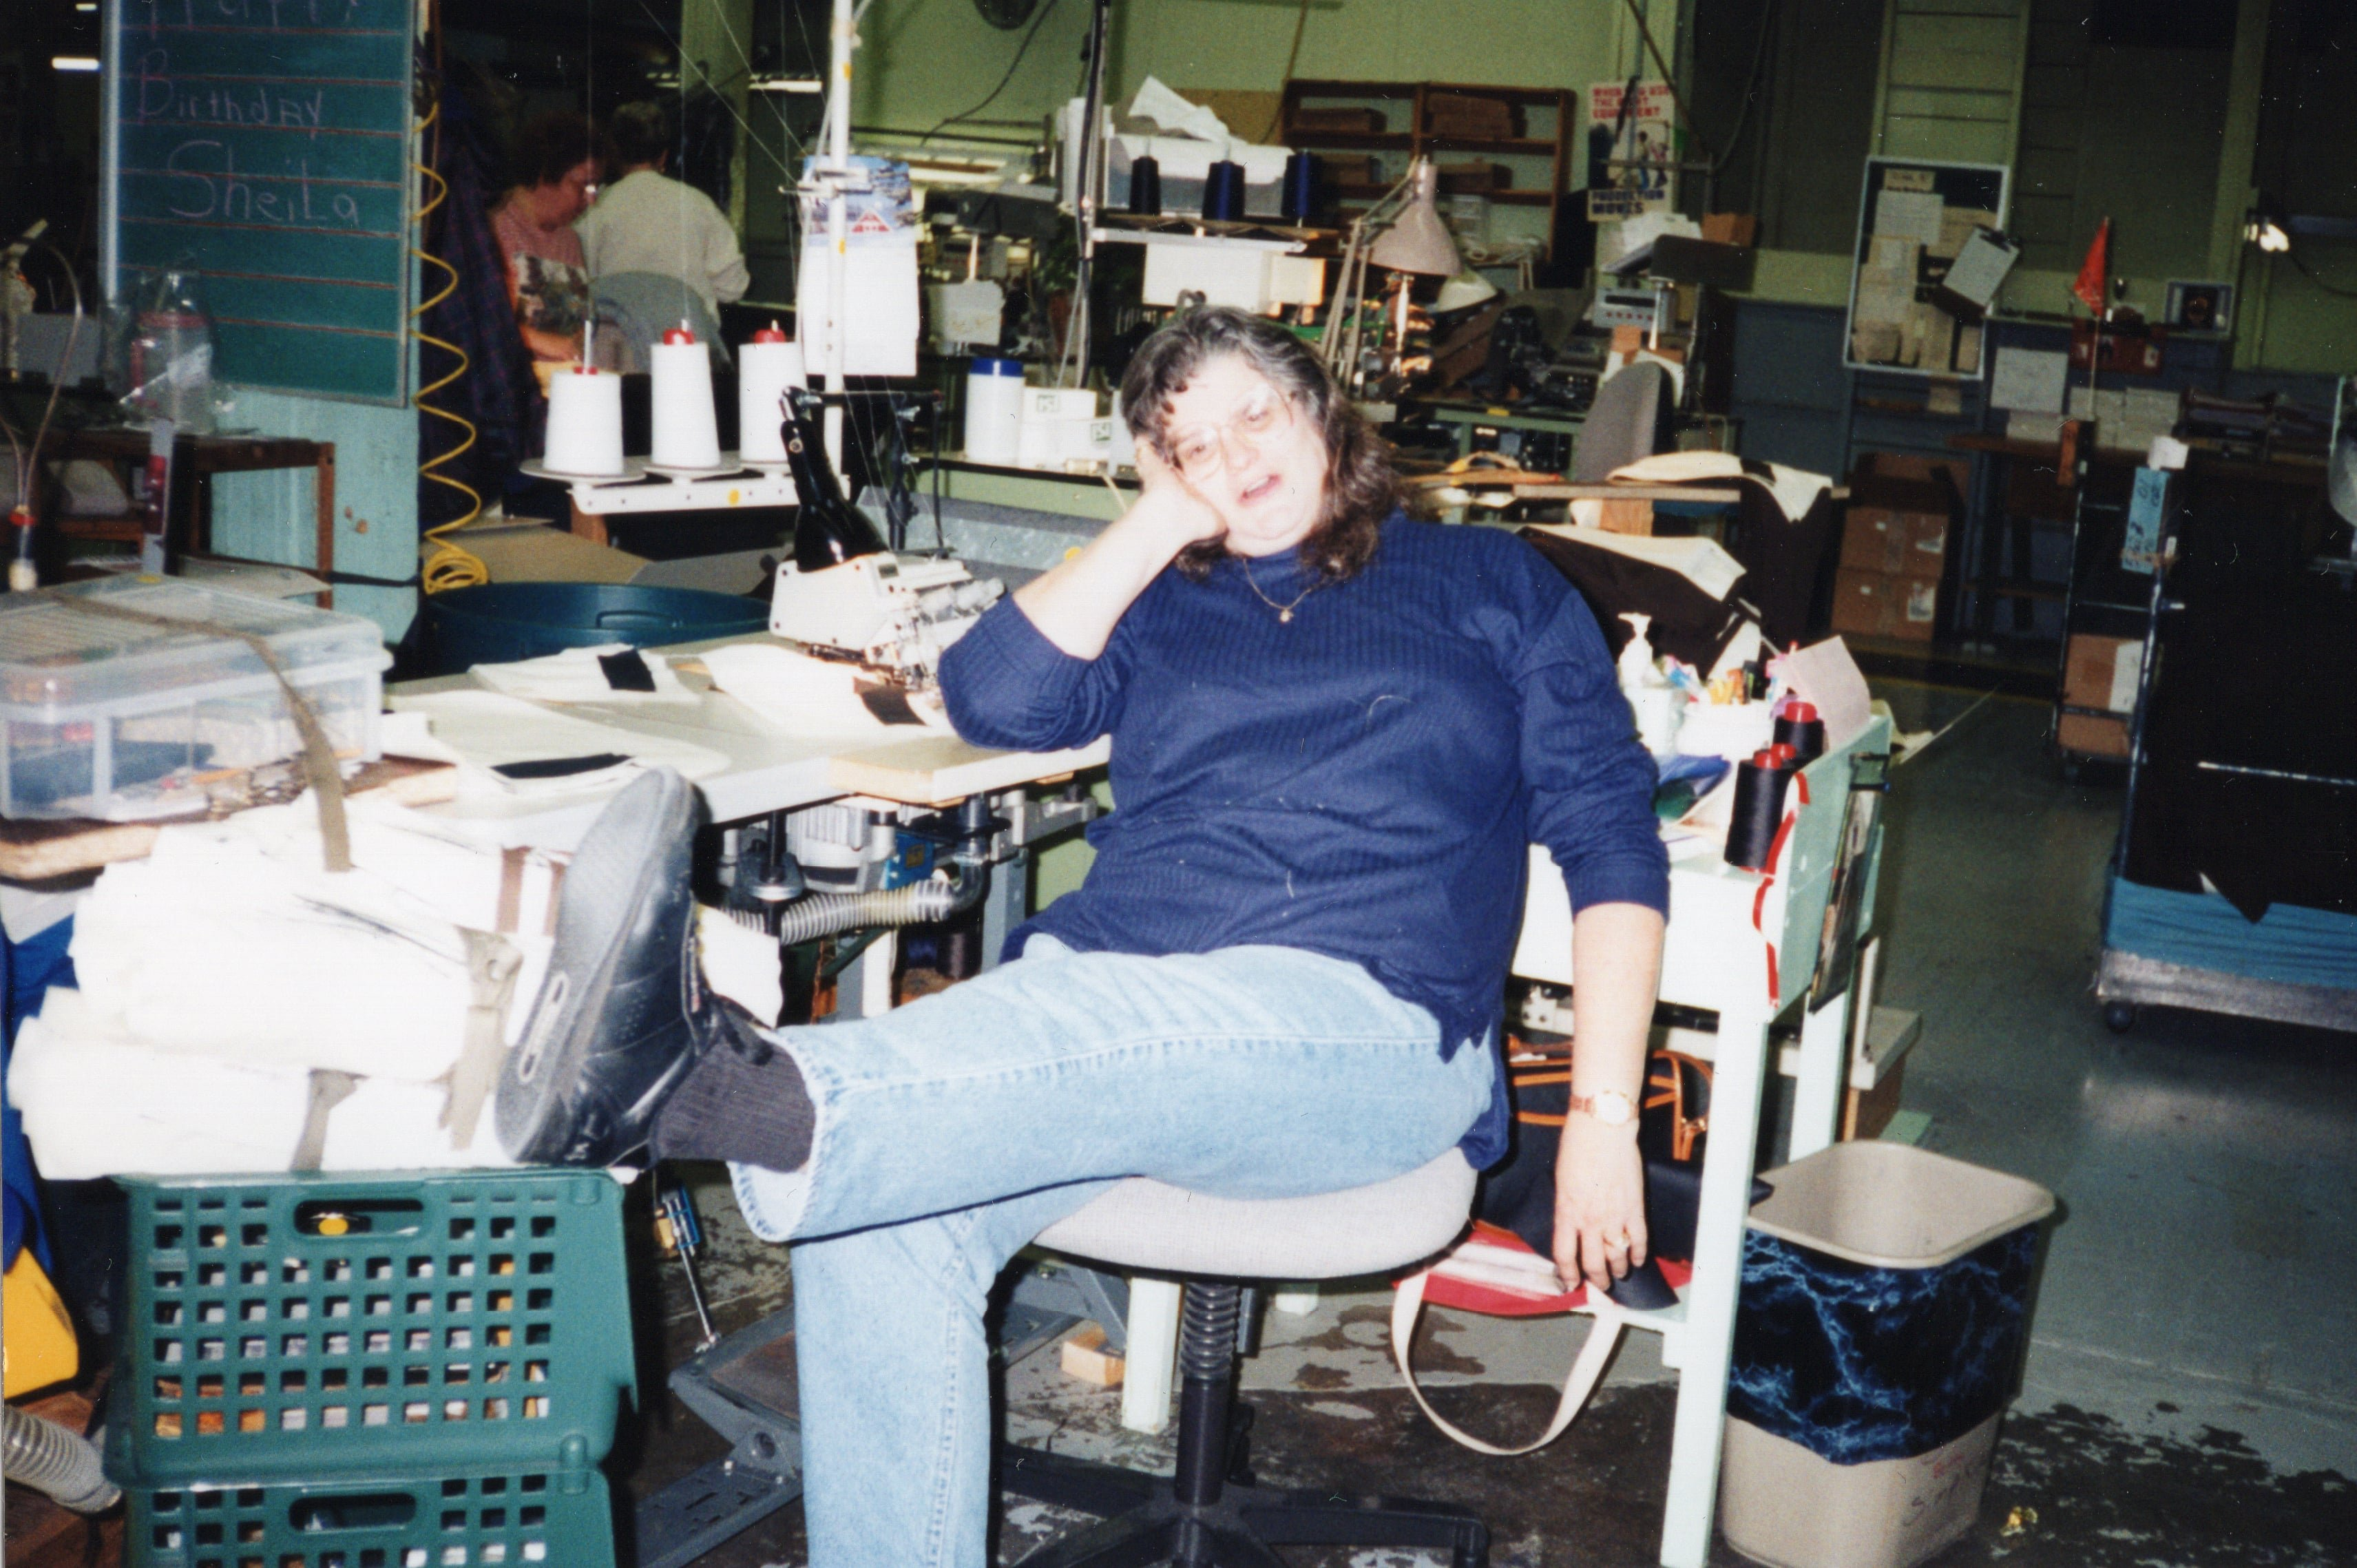 Corbin Ltd. Machine Operator Brenda Seary on break at her machine, Huntington, WV